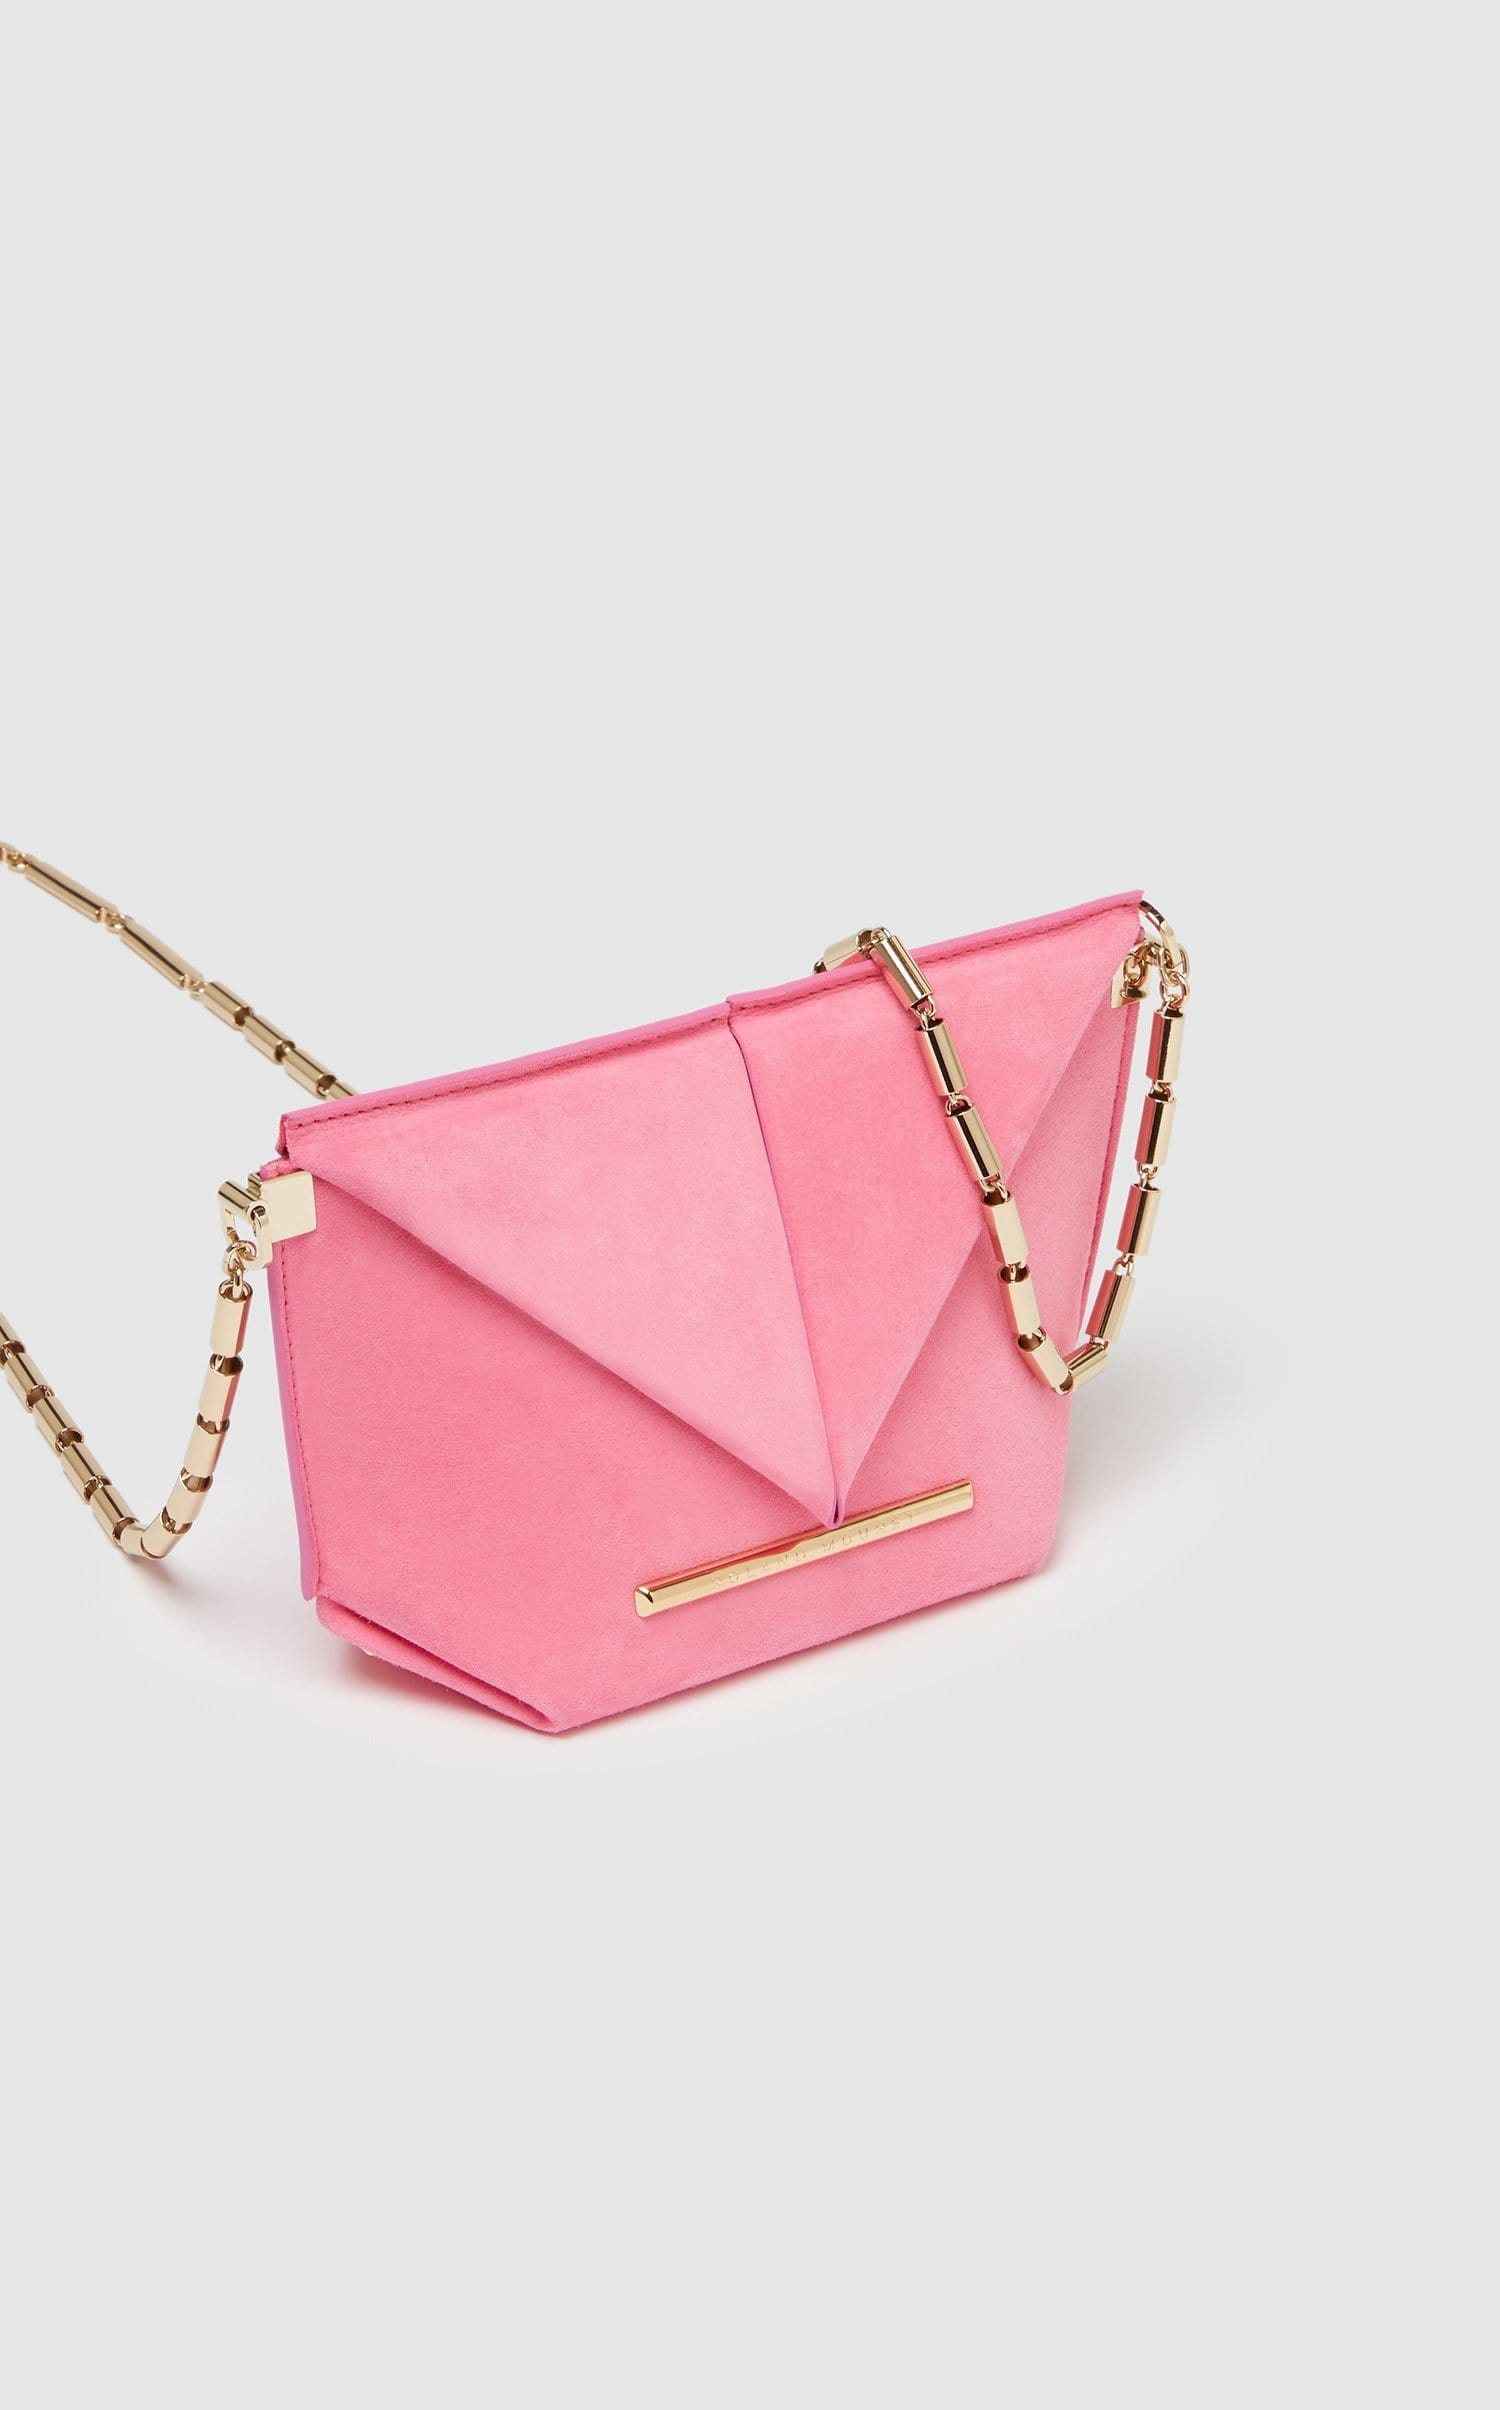 Mini Classico Bag In Candy pink from Roland Mouret